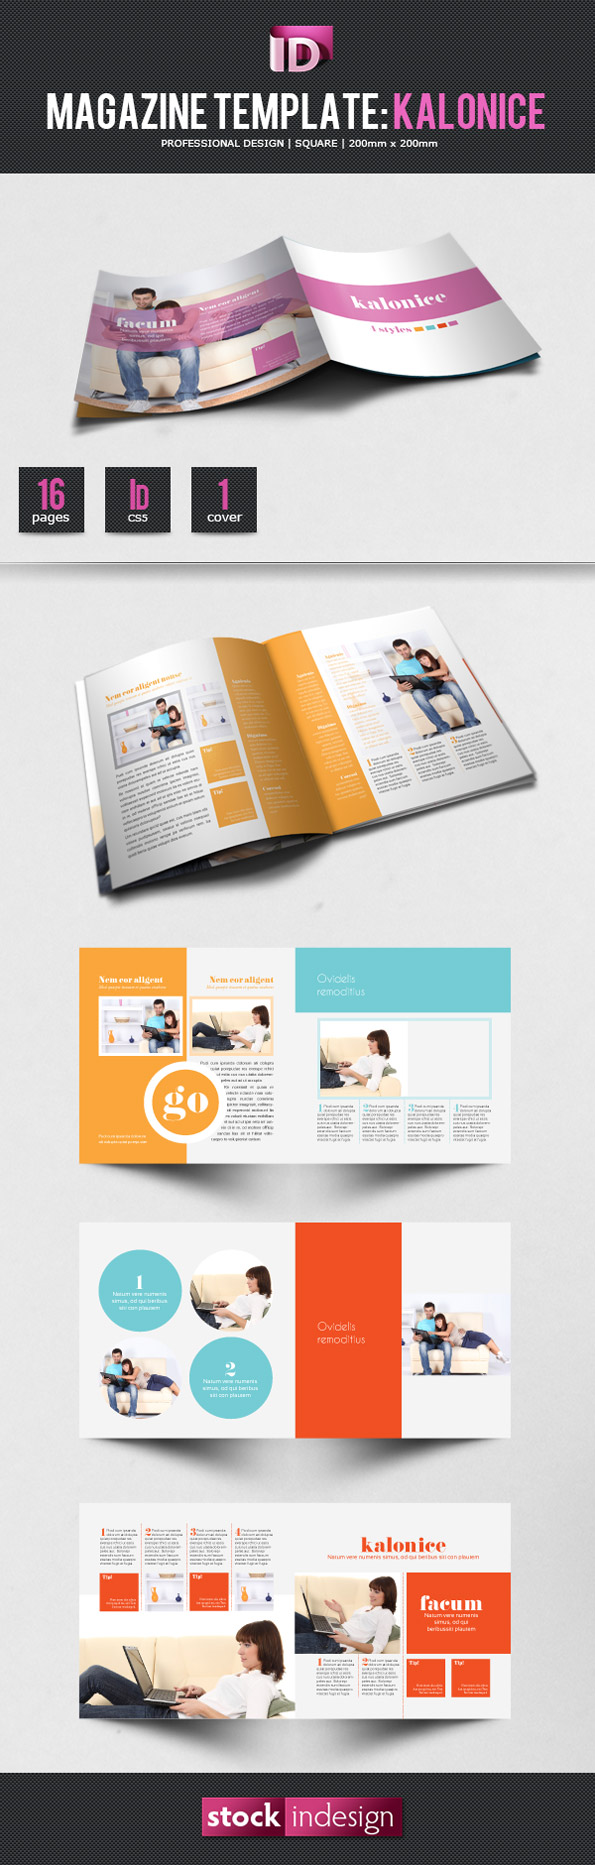 stockindesign magazine template  kalonice